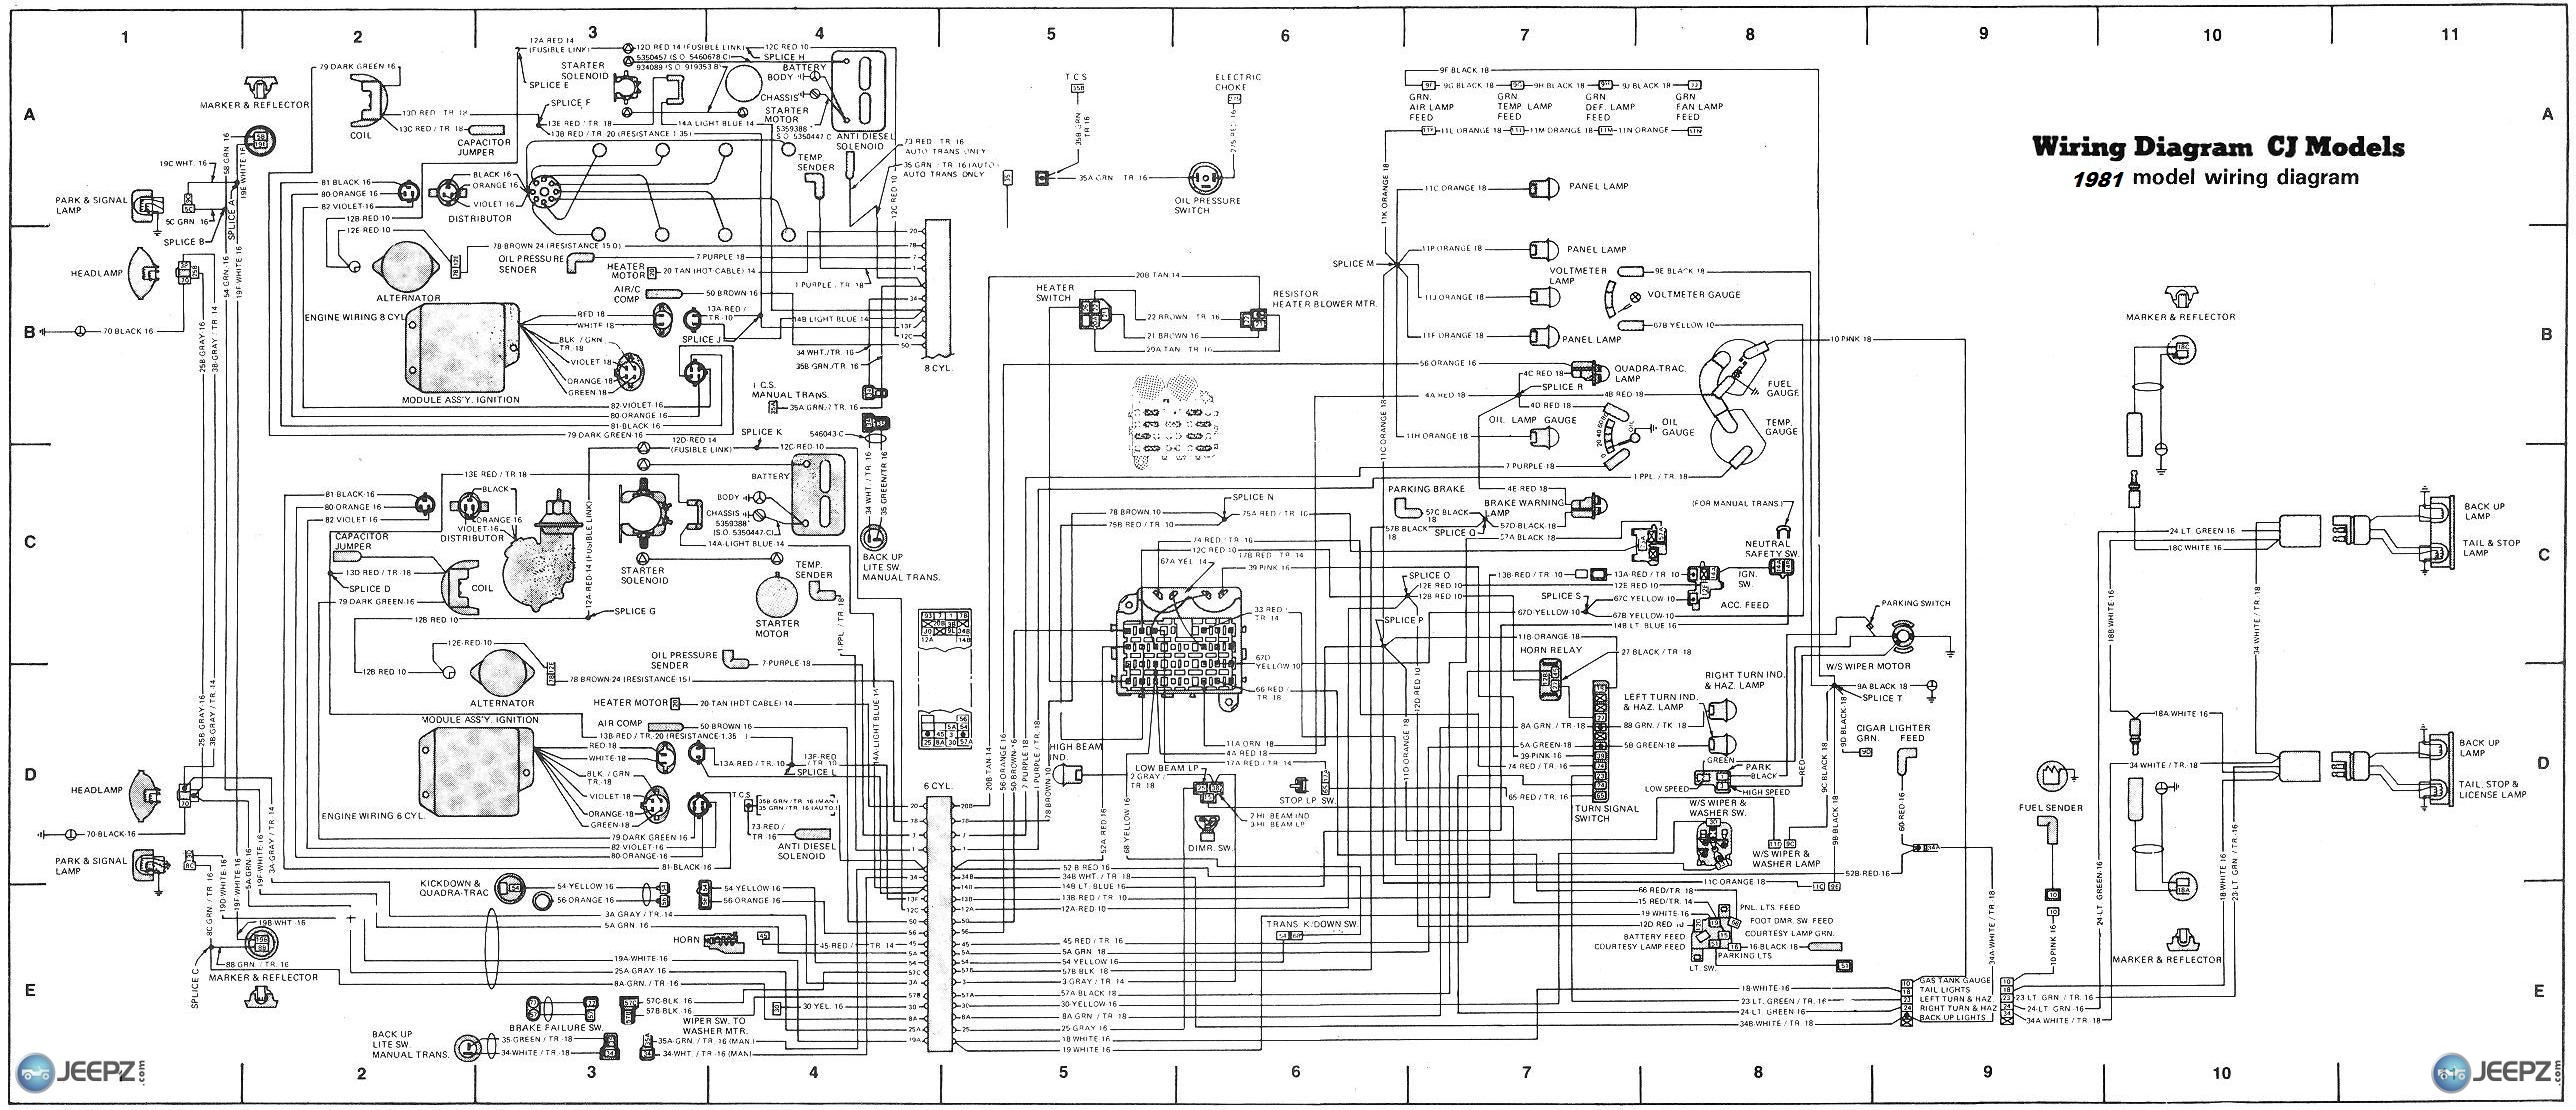 Corsa C Fuse Box List Electrical Wiring Diagrams Opel Utility 1 4 Diagram Layout 28 Images 7993d1301845049 Cj 7 Wire